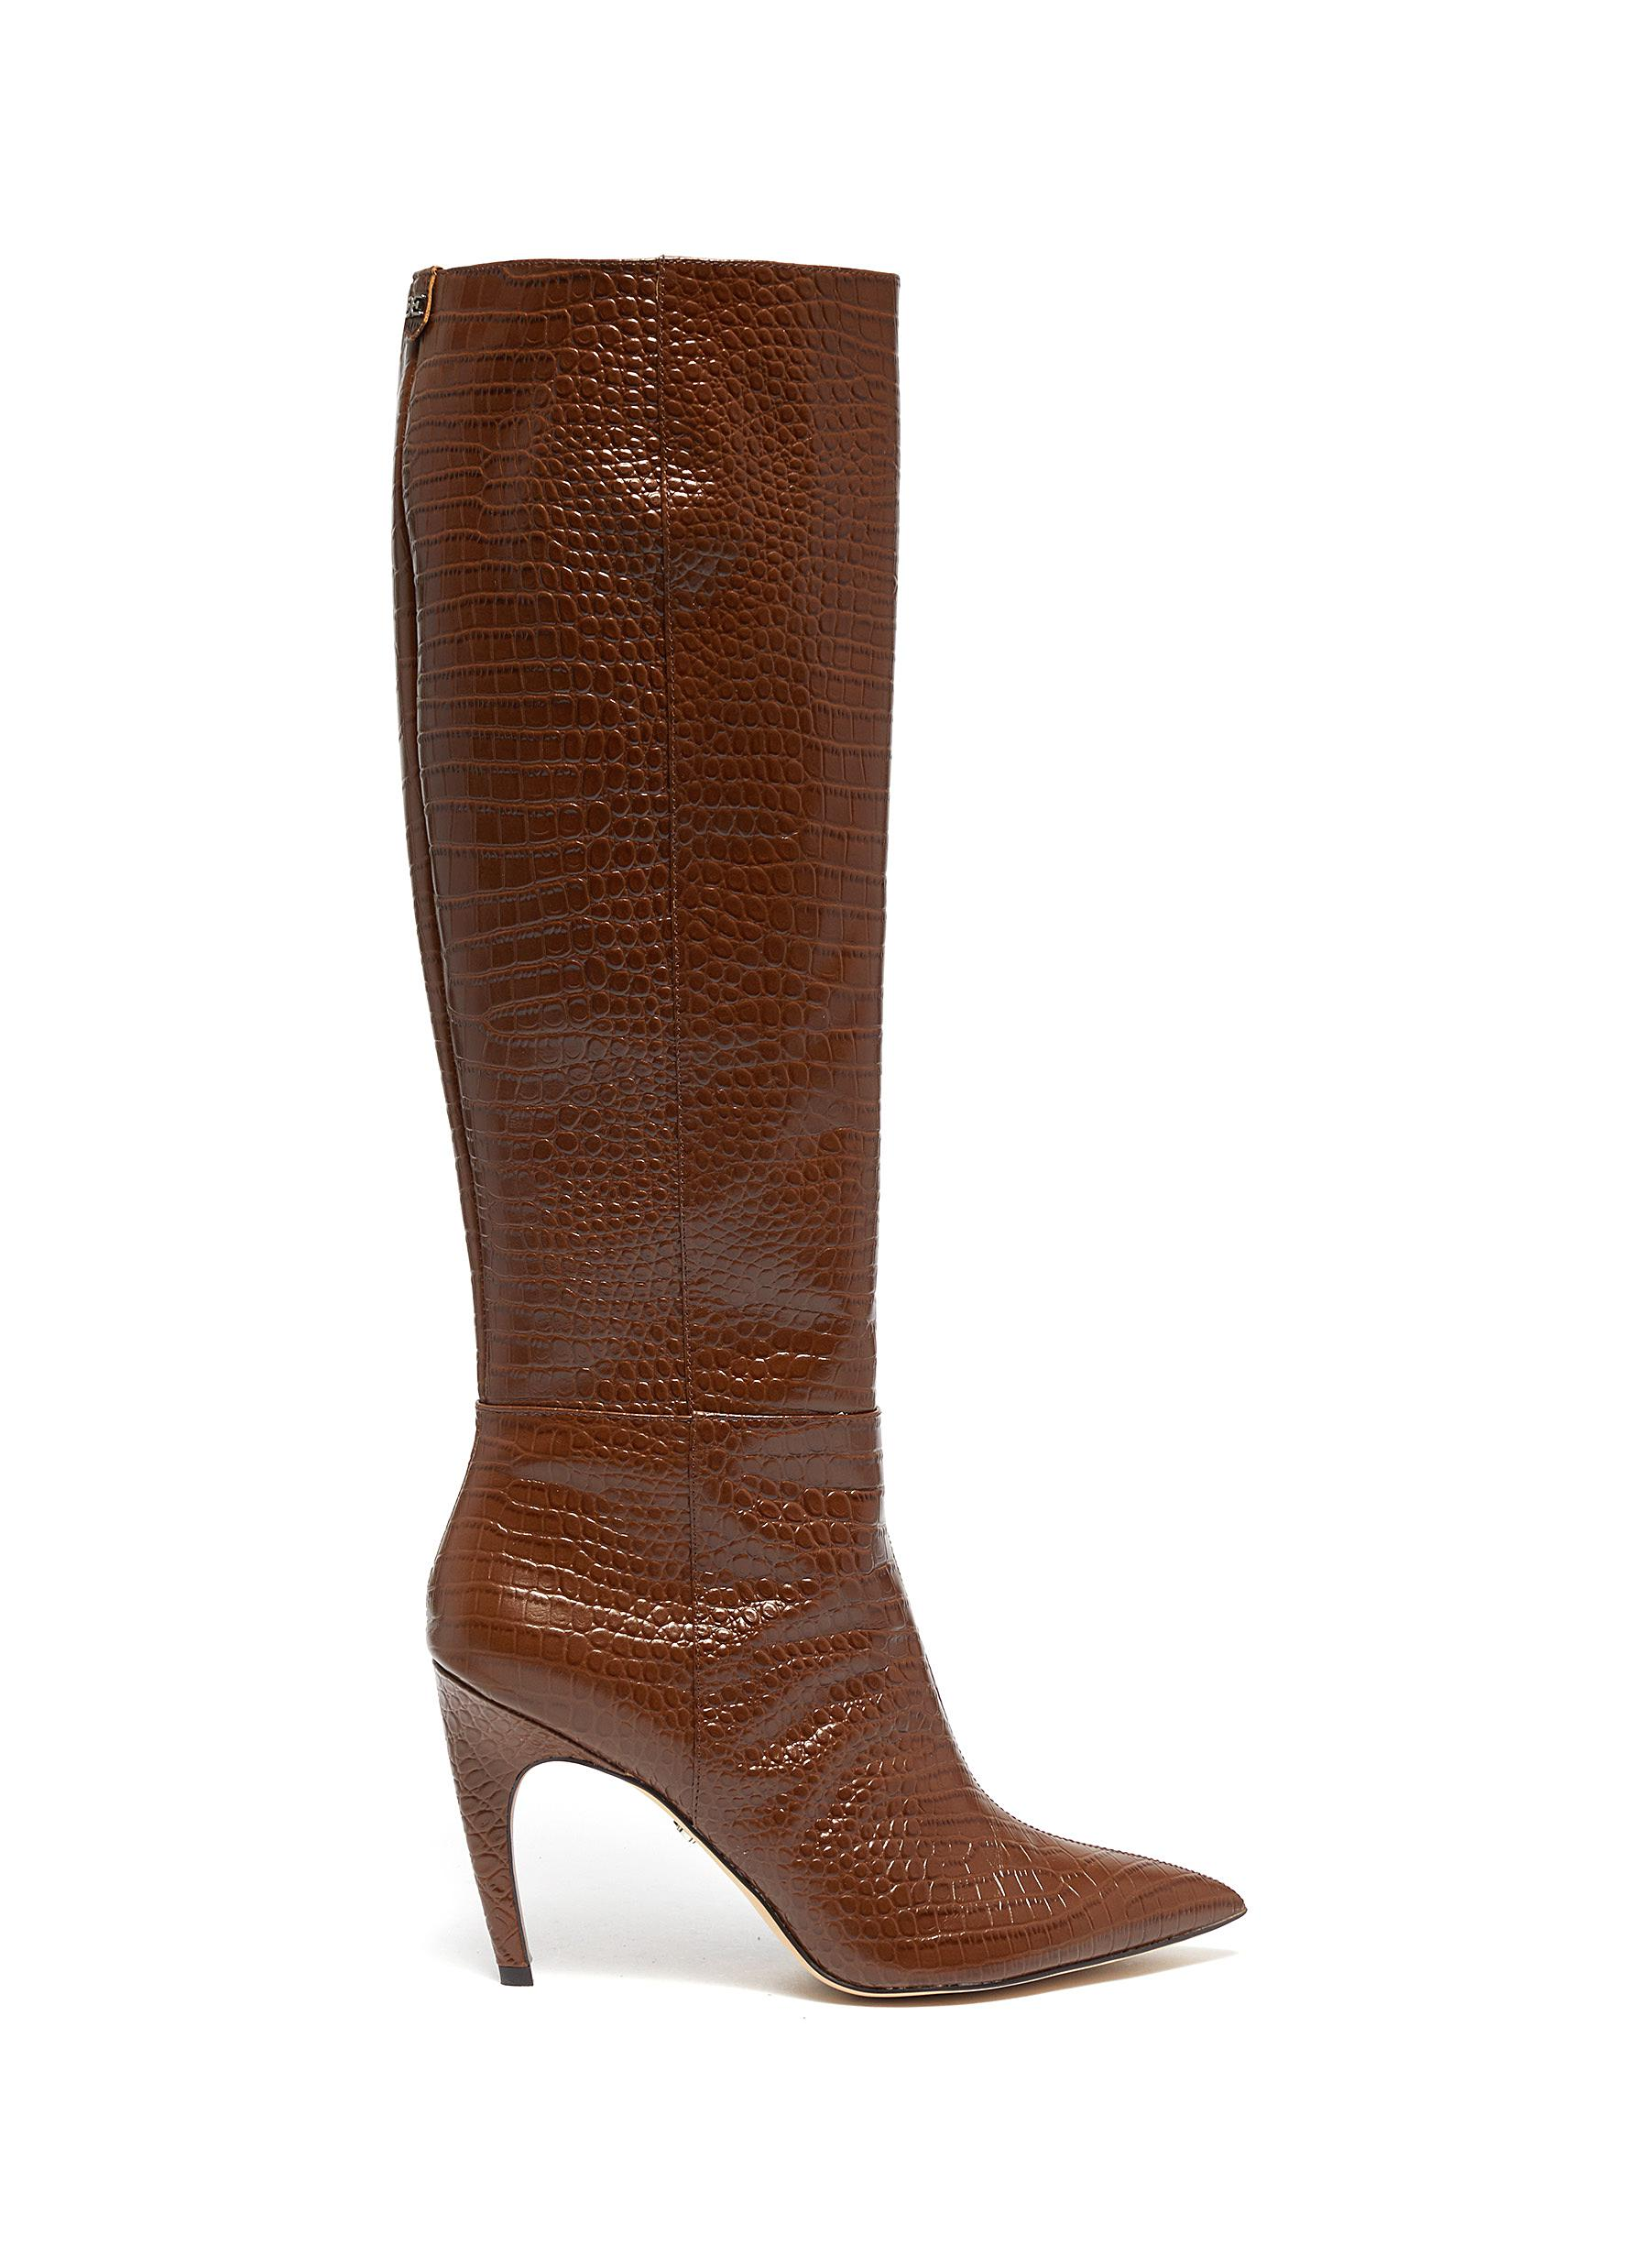 Fraya croc-embossed leather knee high boots by Sam Edelman